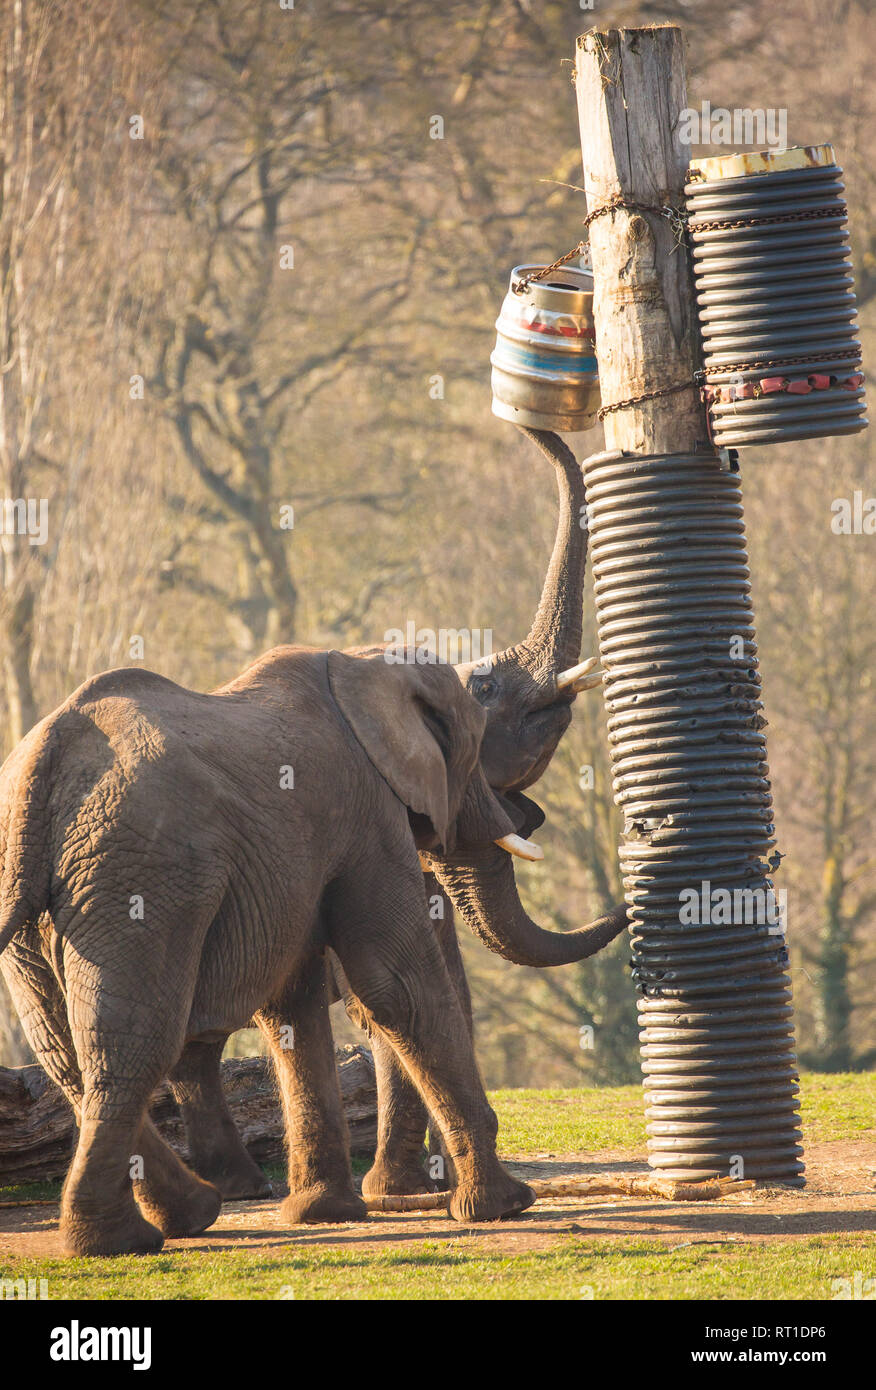 Bewdley, UK. 27th February, 2019. UK weather: as the unseasonably warm temperatures continue in the UK, even elephants seem to need a cool beer to enjoy in the sunshine at the end of the day! These African elephants at West Midlands Safari Park are out in the glorious sunshine reaching up to a suspended beer keg - perhaps not realising it is without contents. Credit: Lee Hudson/Alamy Live News - Stock Image